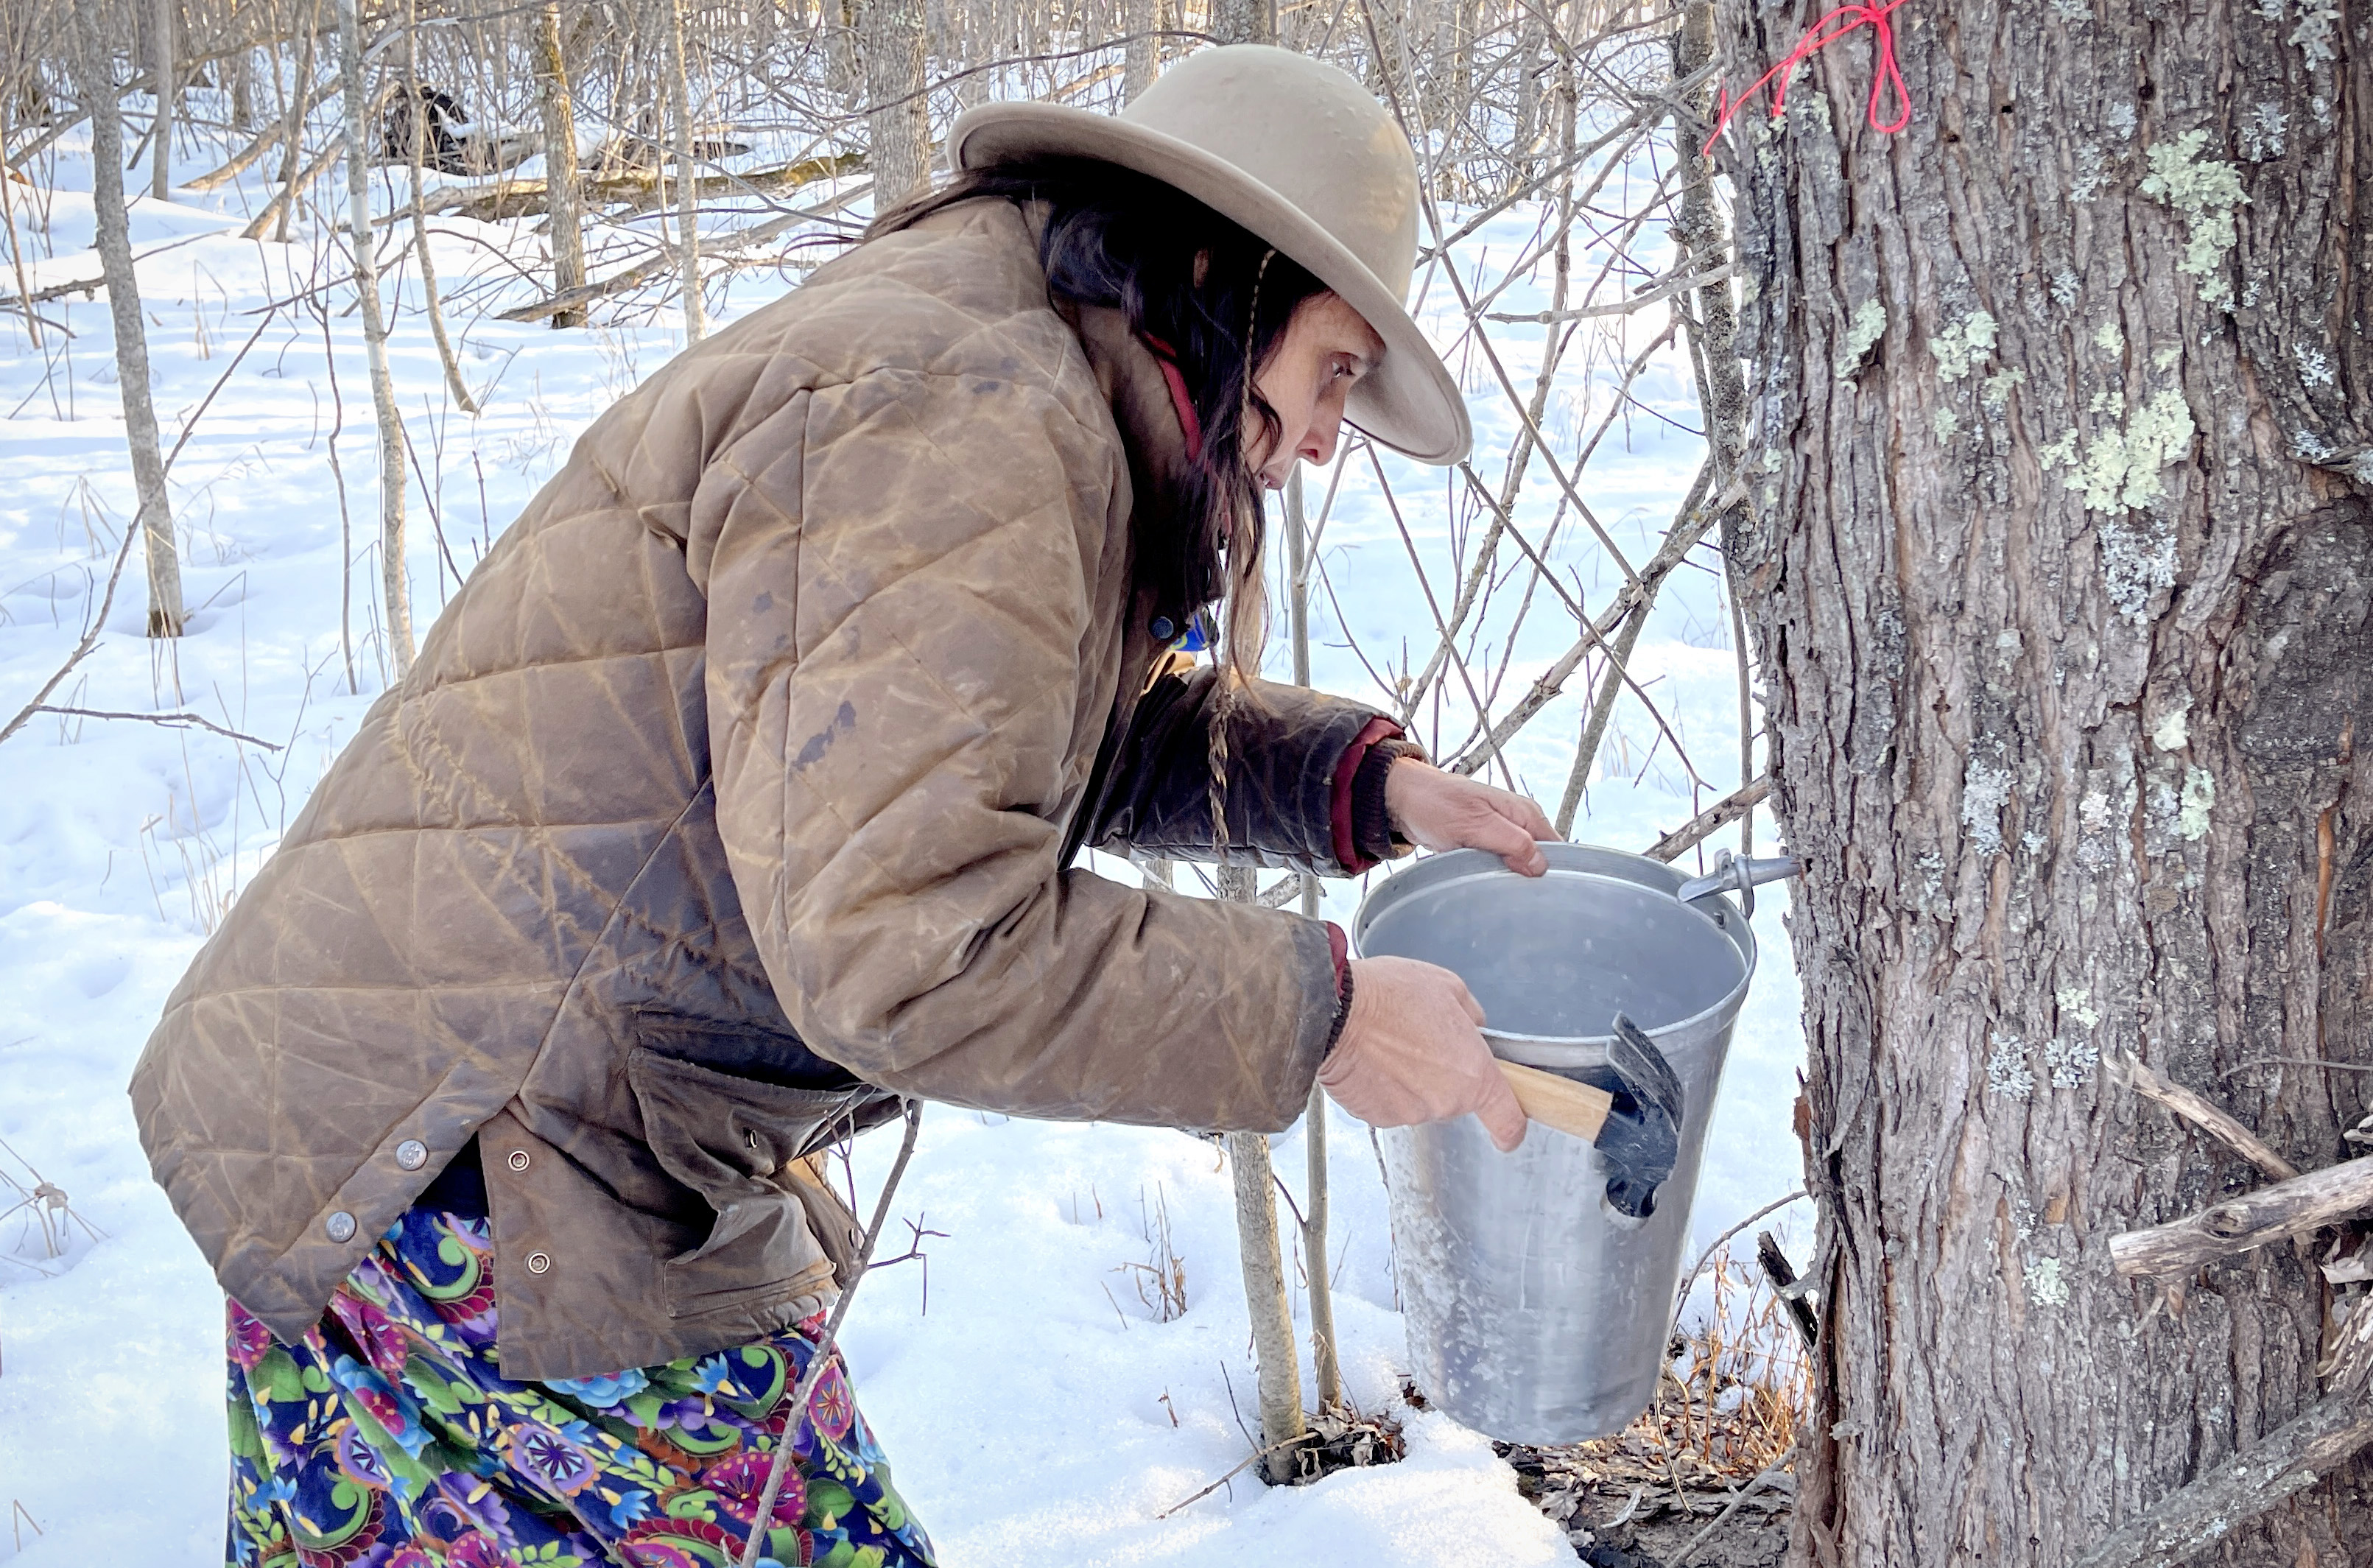 Winona LaDuke taps a maple tree near the Enbridge Line 3 pipeline during a ceremony in early March. Snow on the ground. Hammer in hand, holding a metal pal up to the tap.